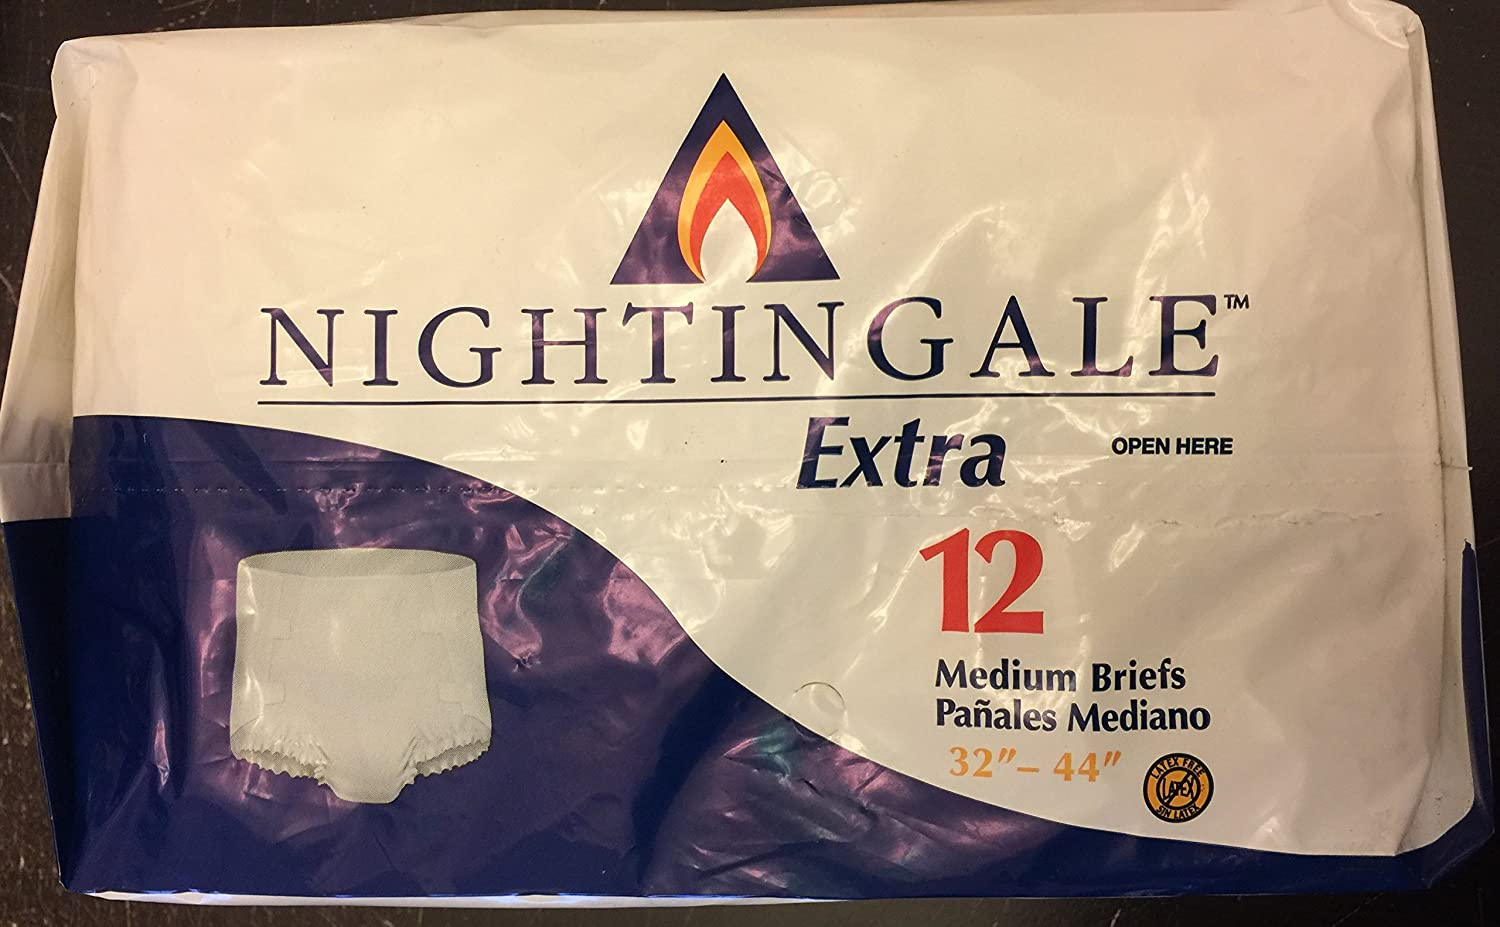 Amazon.com: Nightingale Extra Adult Briefs, Medium 32- 44 12 Each Bag: Health & Personal Care